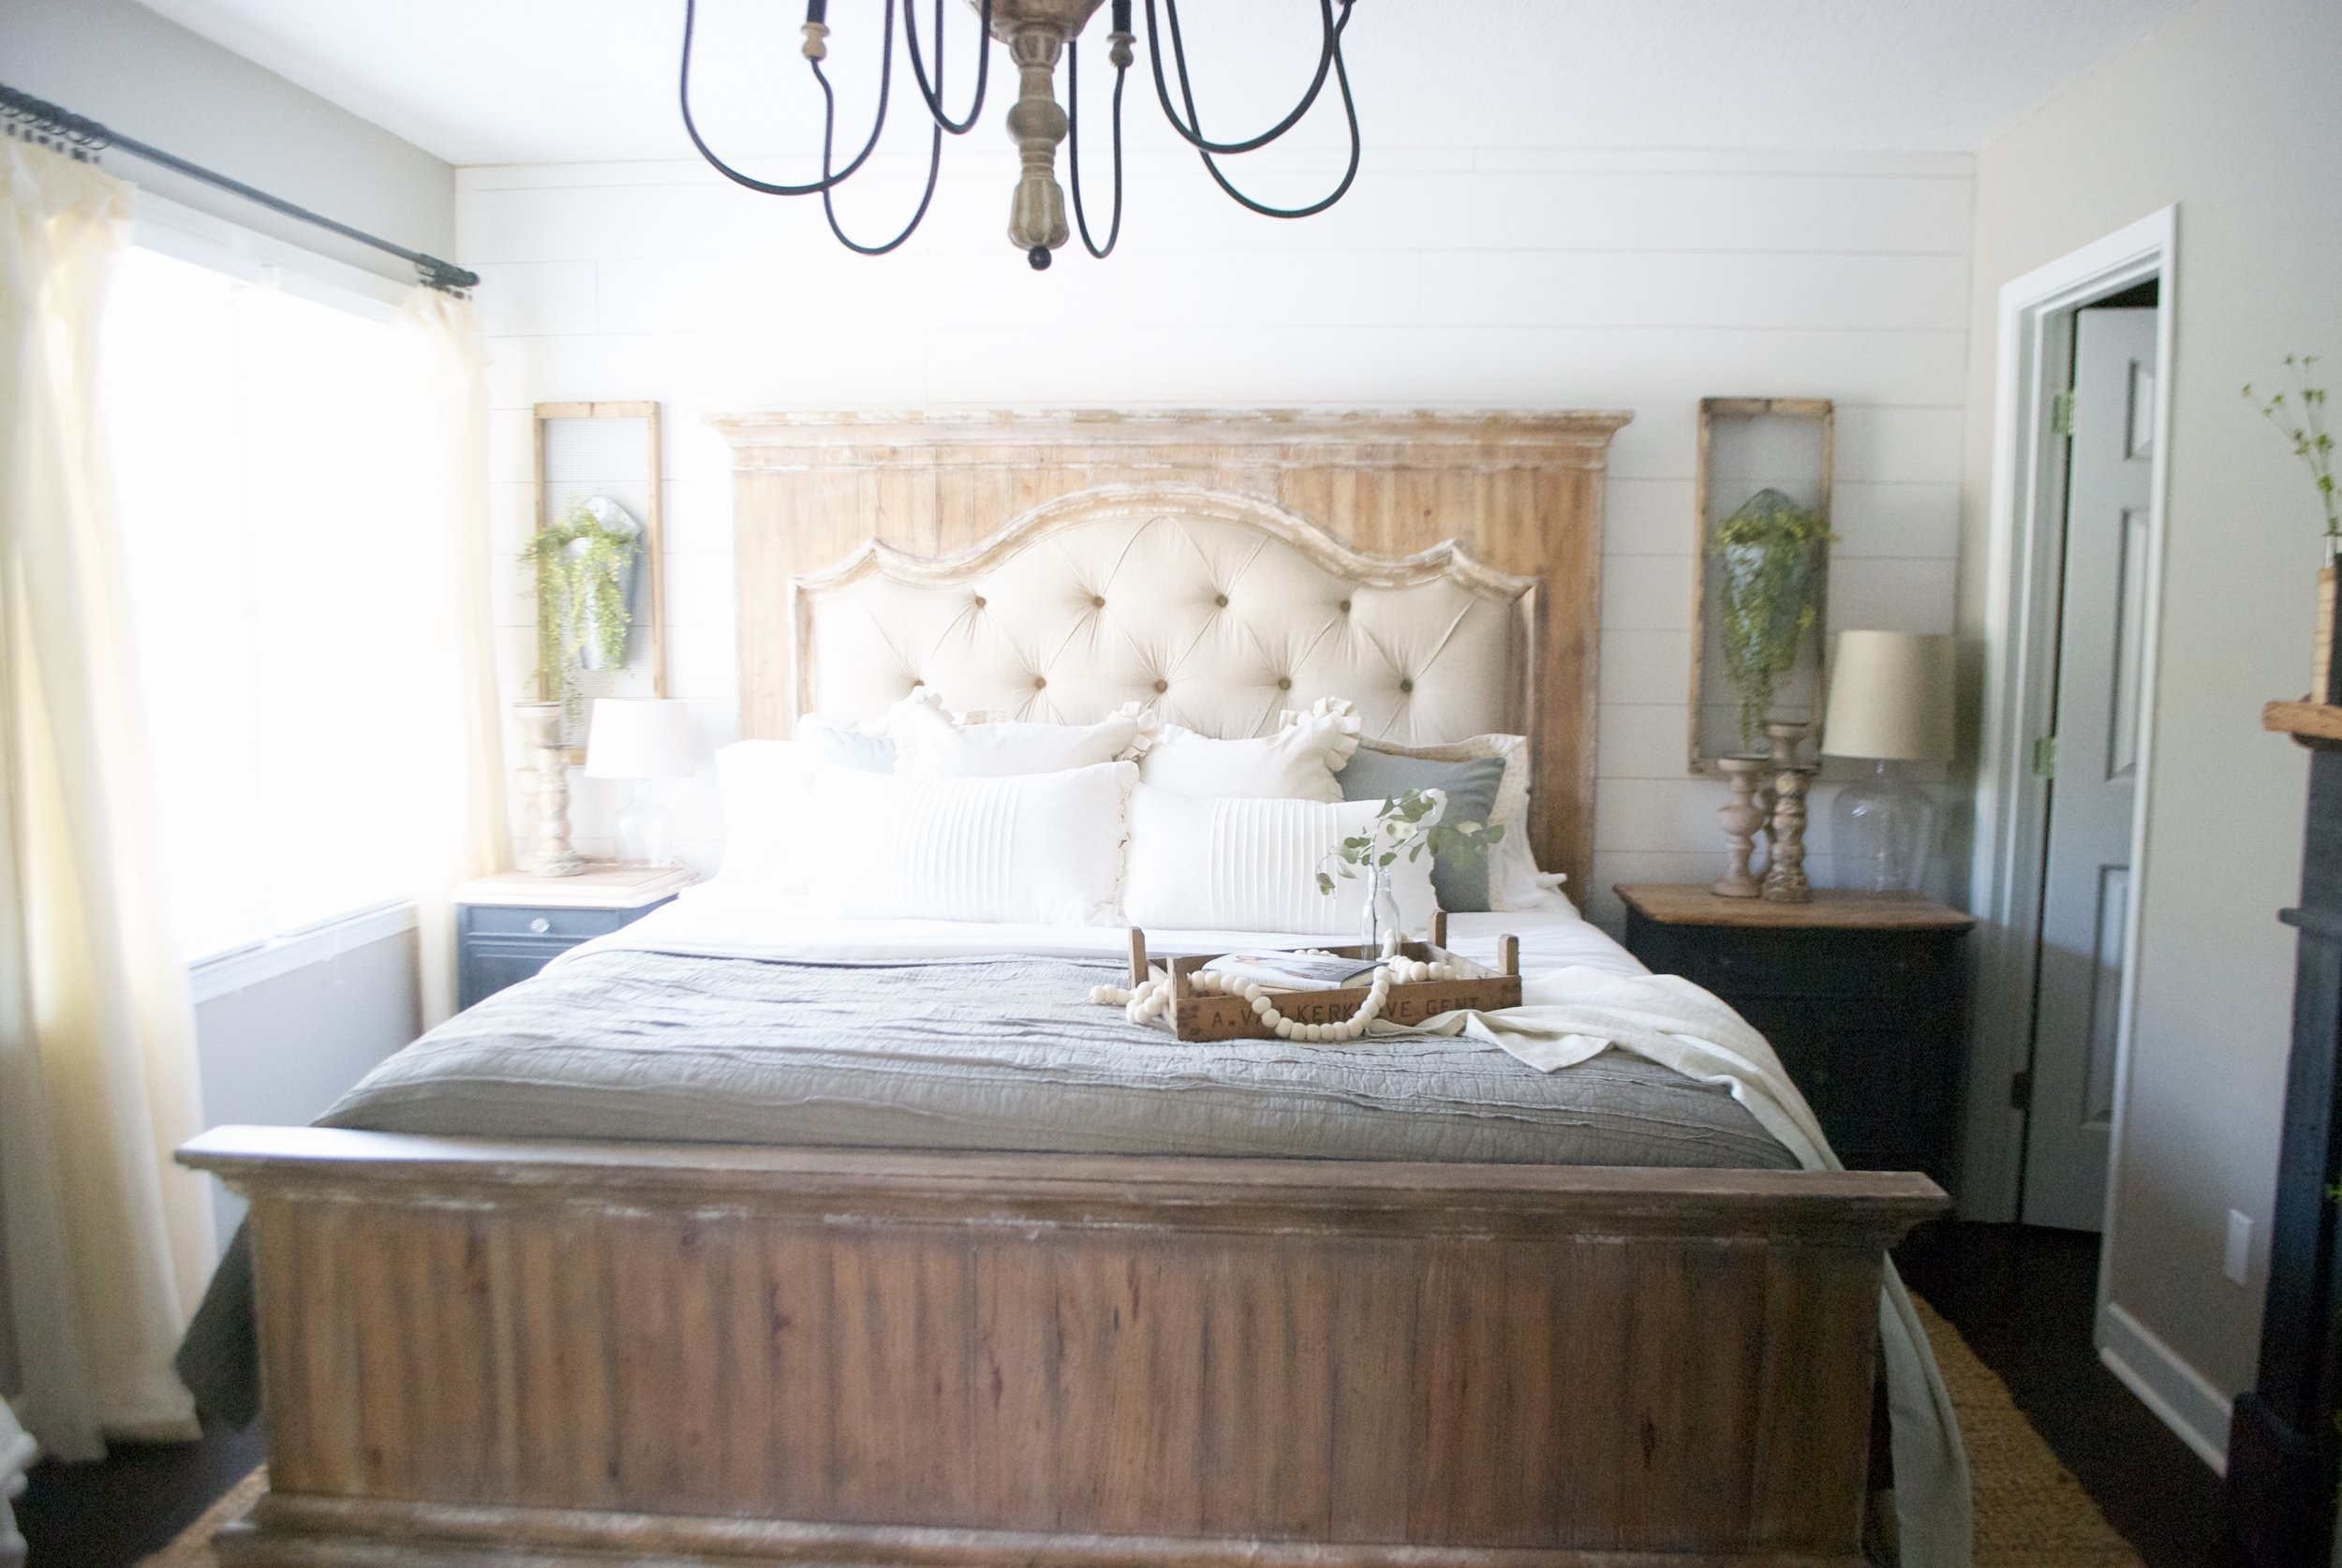 Plum Pretty Decor and Design Farmhouse Master Bedroom Tour- Farmhouse Inspired Master Bedroom